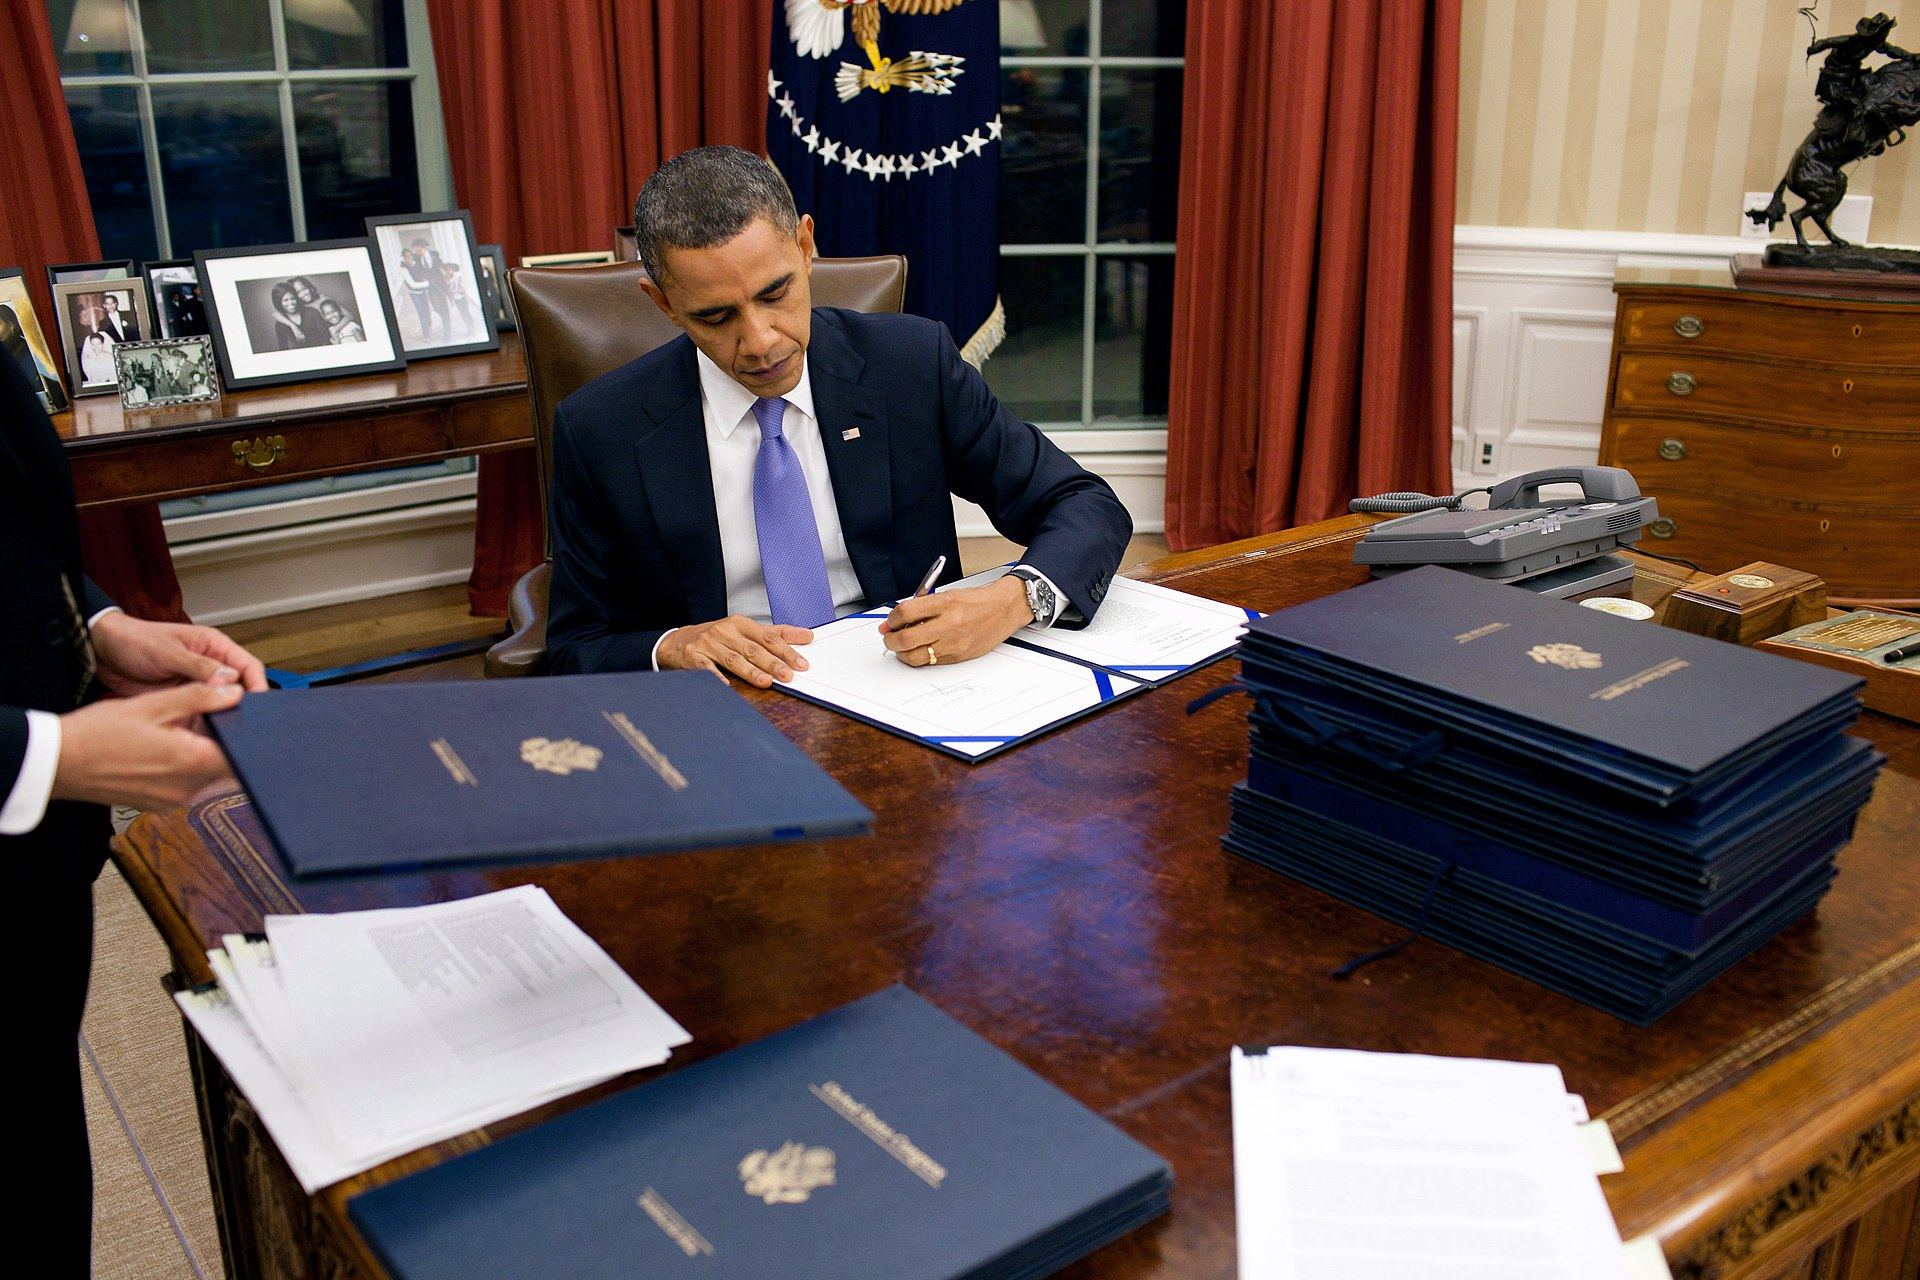 President Obama Immigration Executive Action